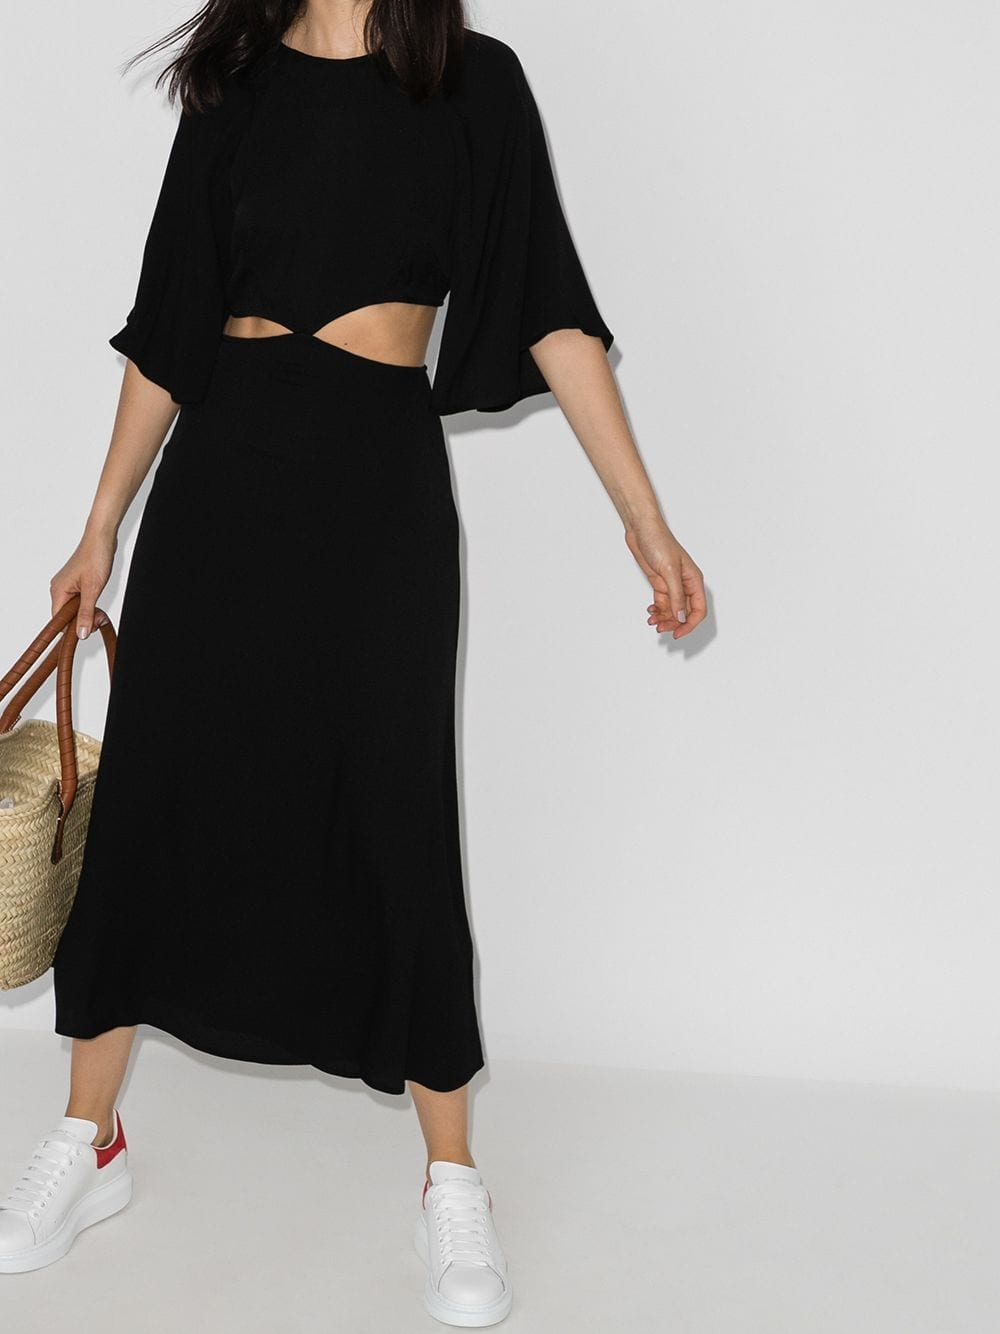 REFORMATION Benny Cut-out Midi Dress